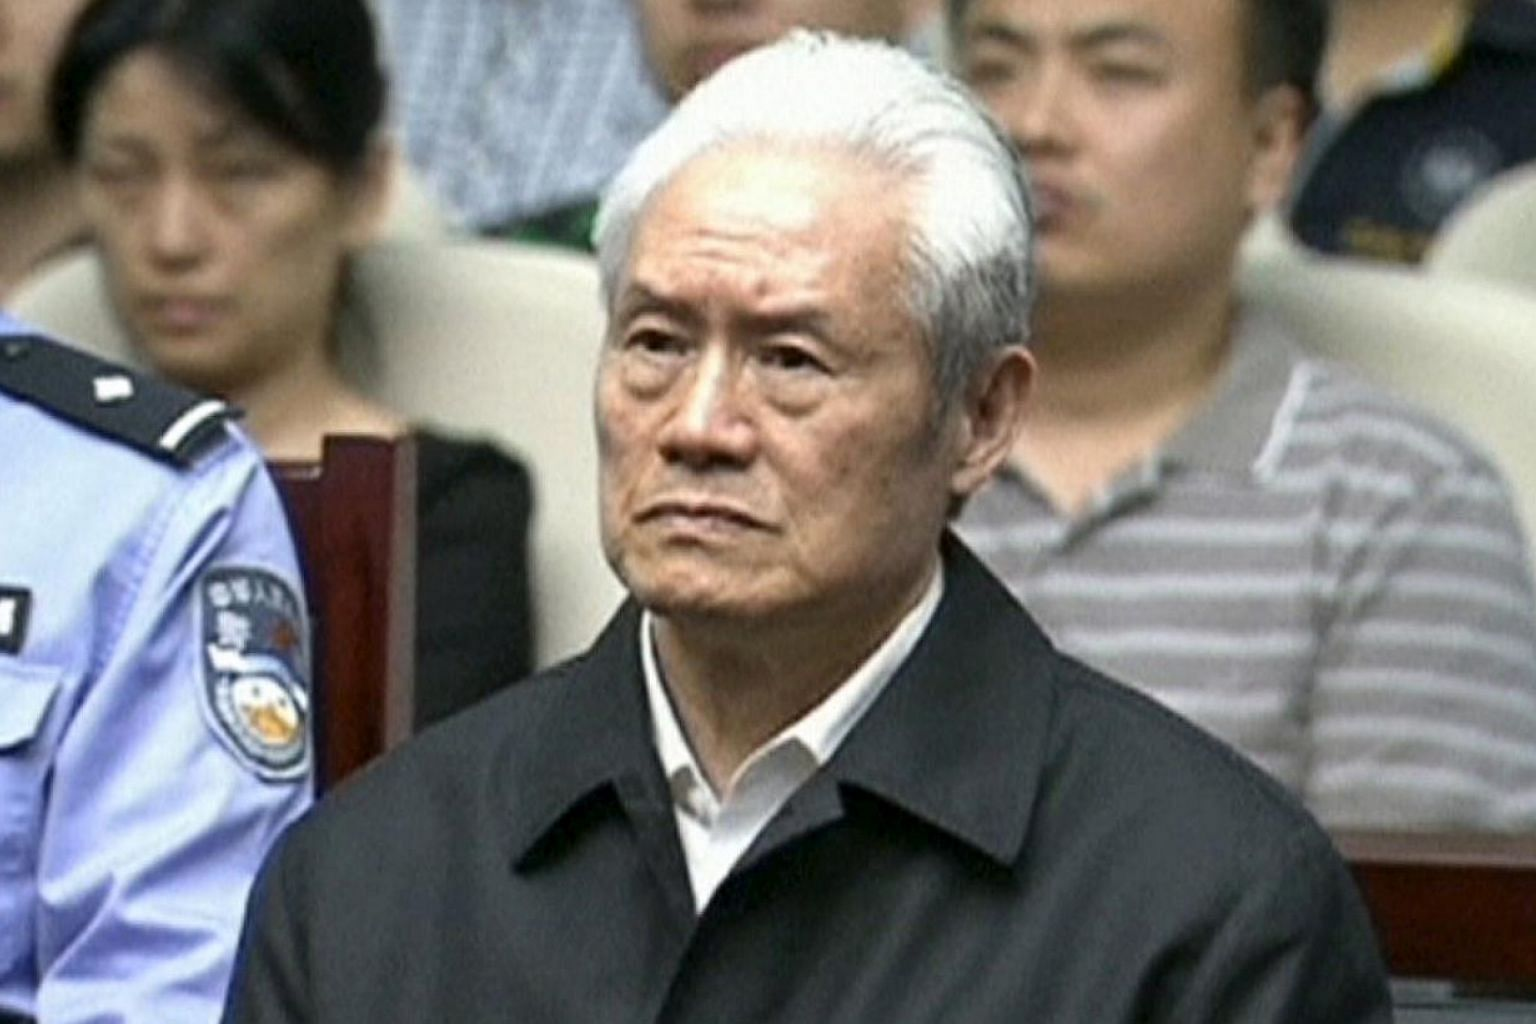 Zhou Yongkang, China's former domestic security chief, attends his sentence hearing in a court in Tianjin, China, in this still image taken from video provided by China Central Television and shot on June 11, 2015. -- PHOTO: REUTERS